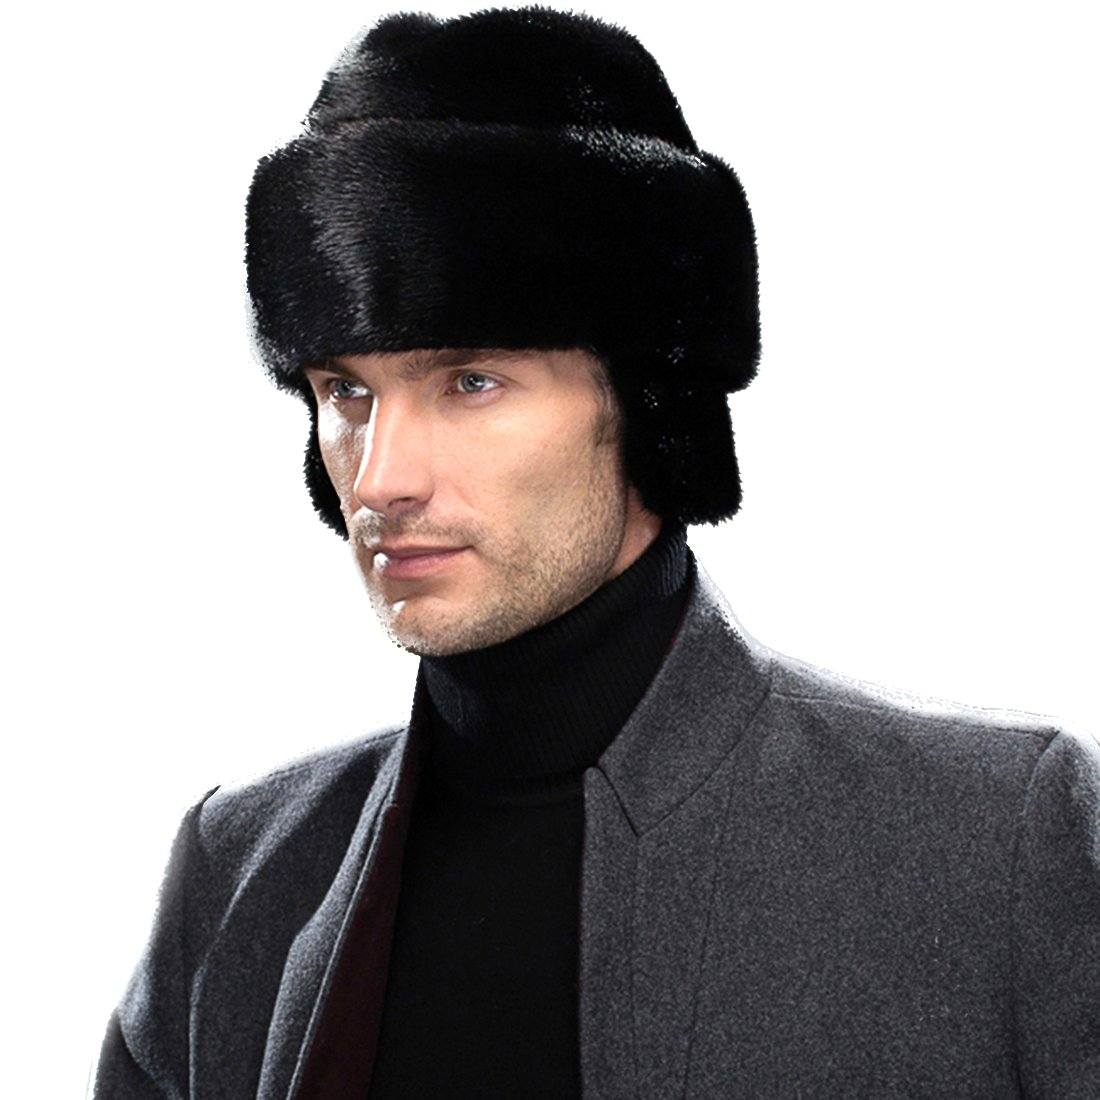 URSFUR Men's Mink Fur Russian Cossack Hats Caps with Ear Flaps